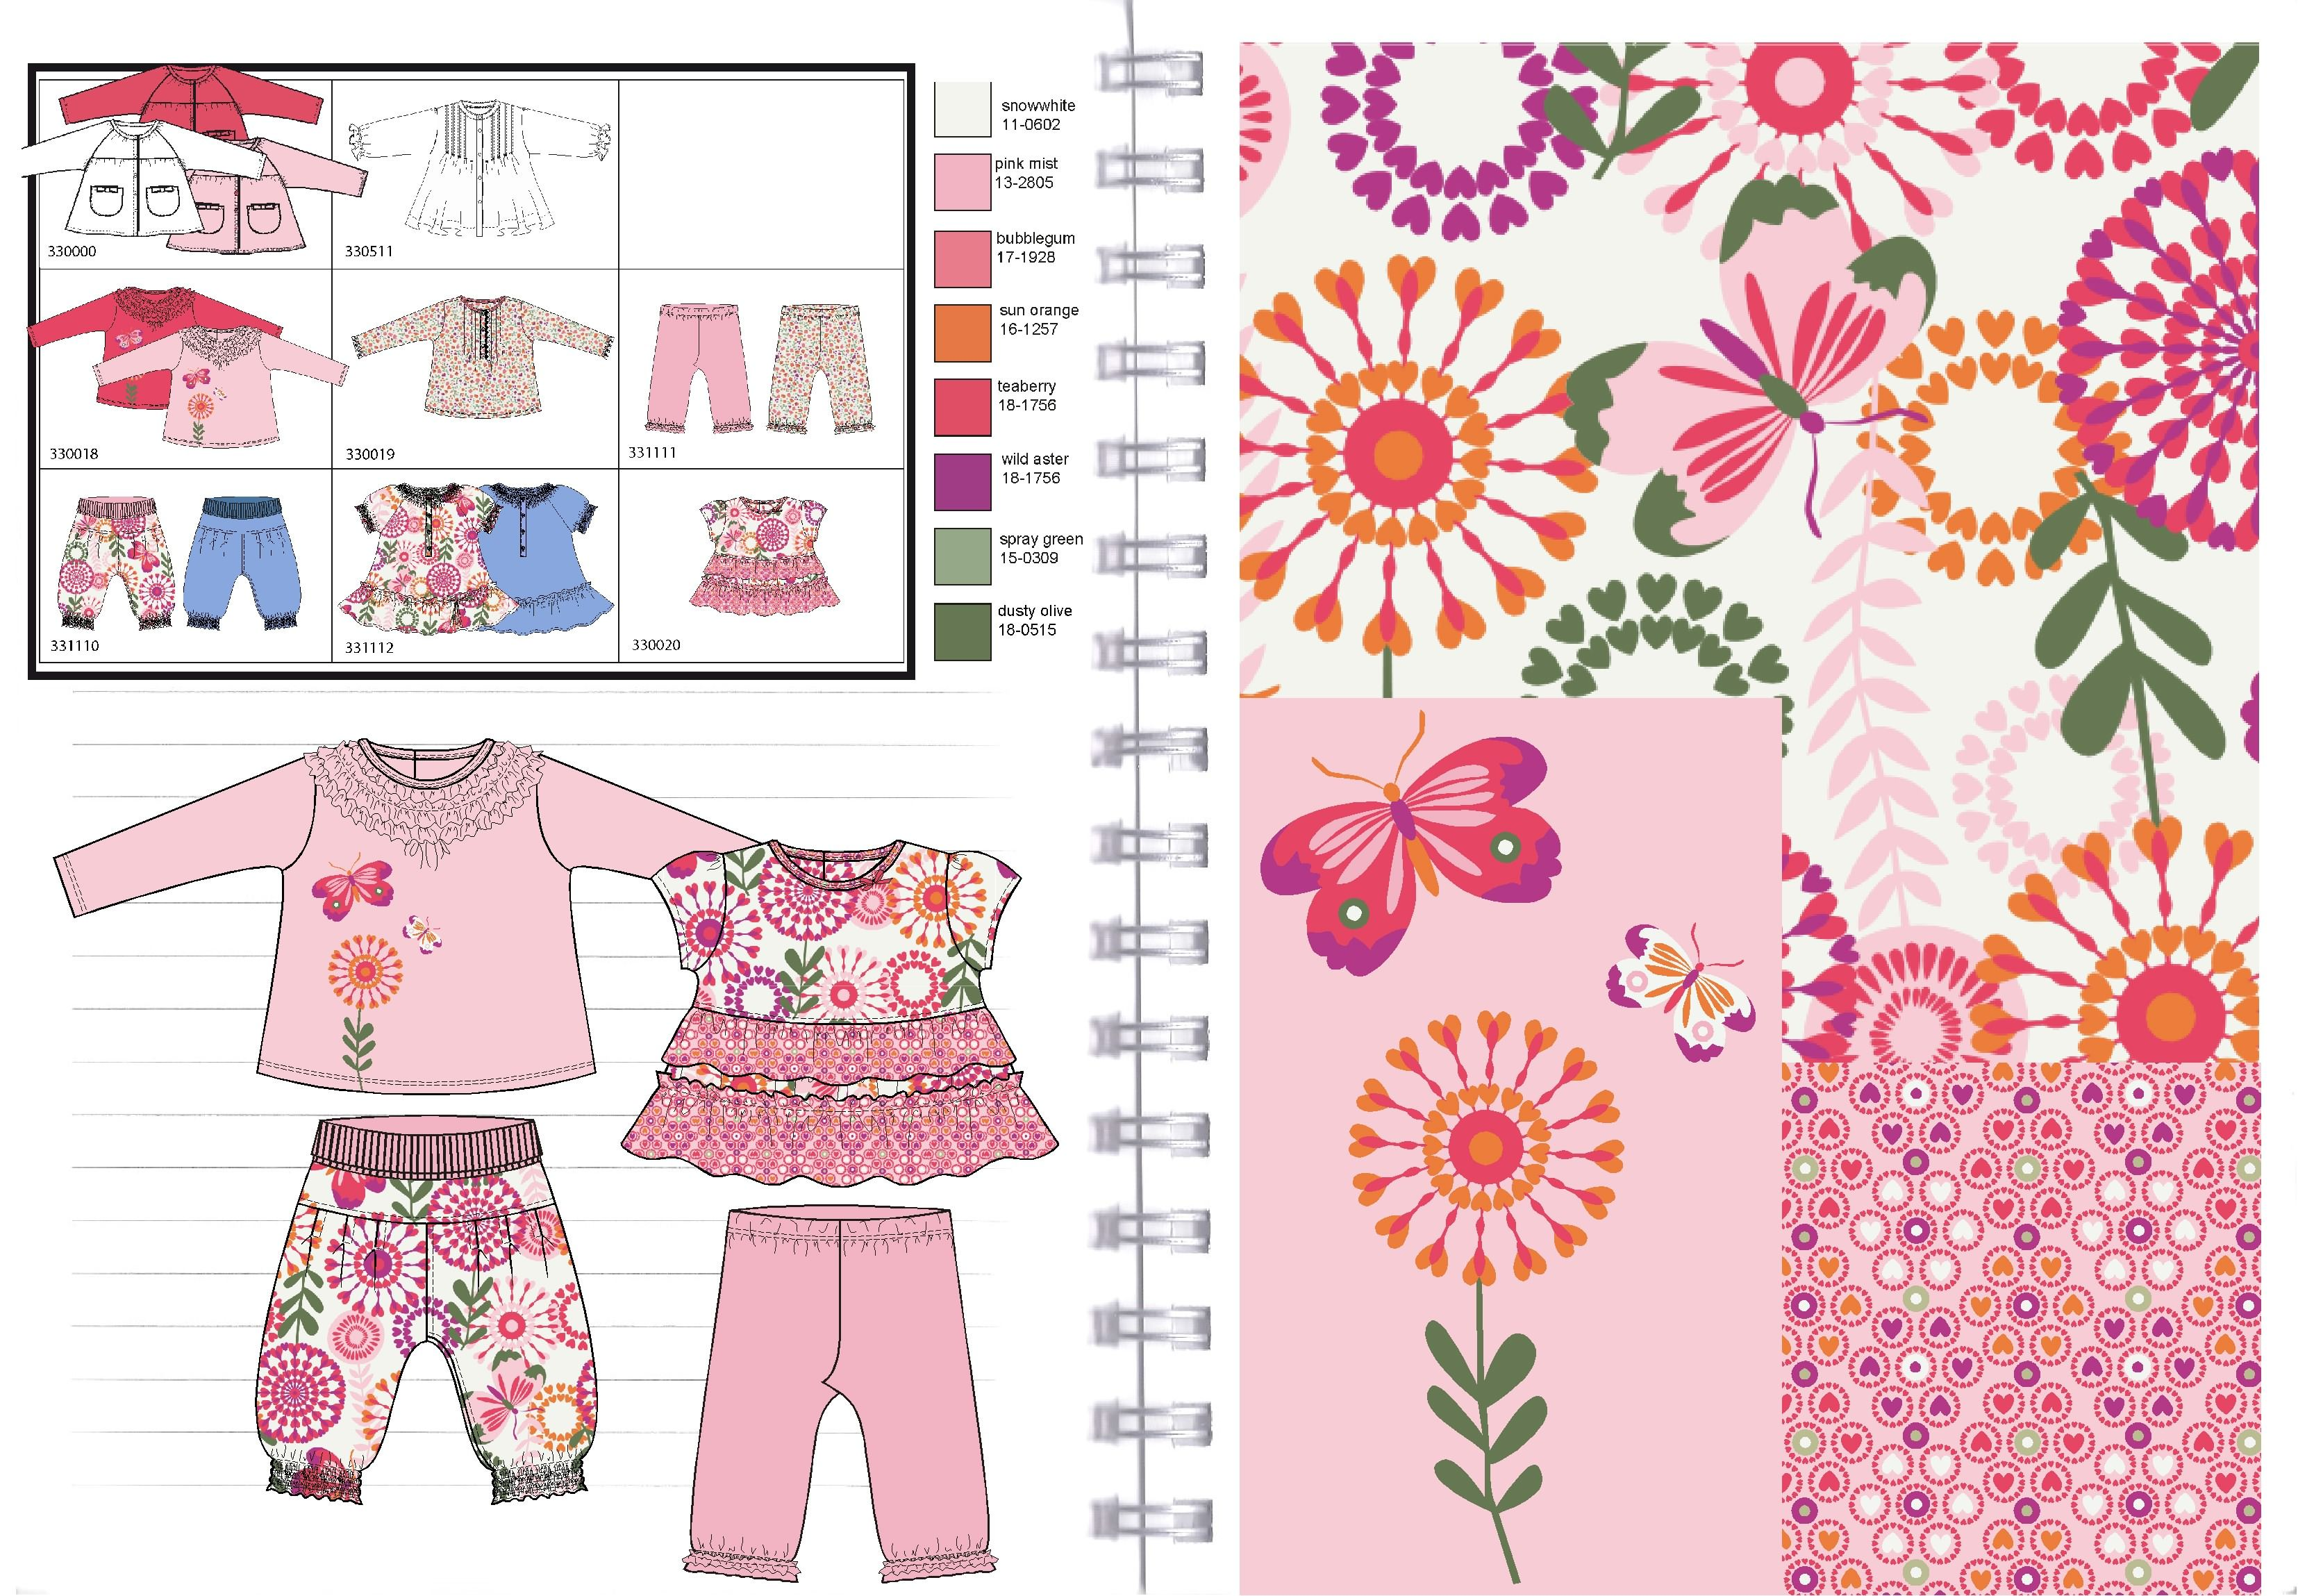 Total Concepts for Newborn Girls Summer Collection. | paneles diseño ...